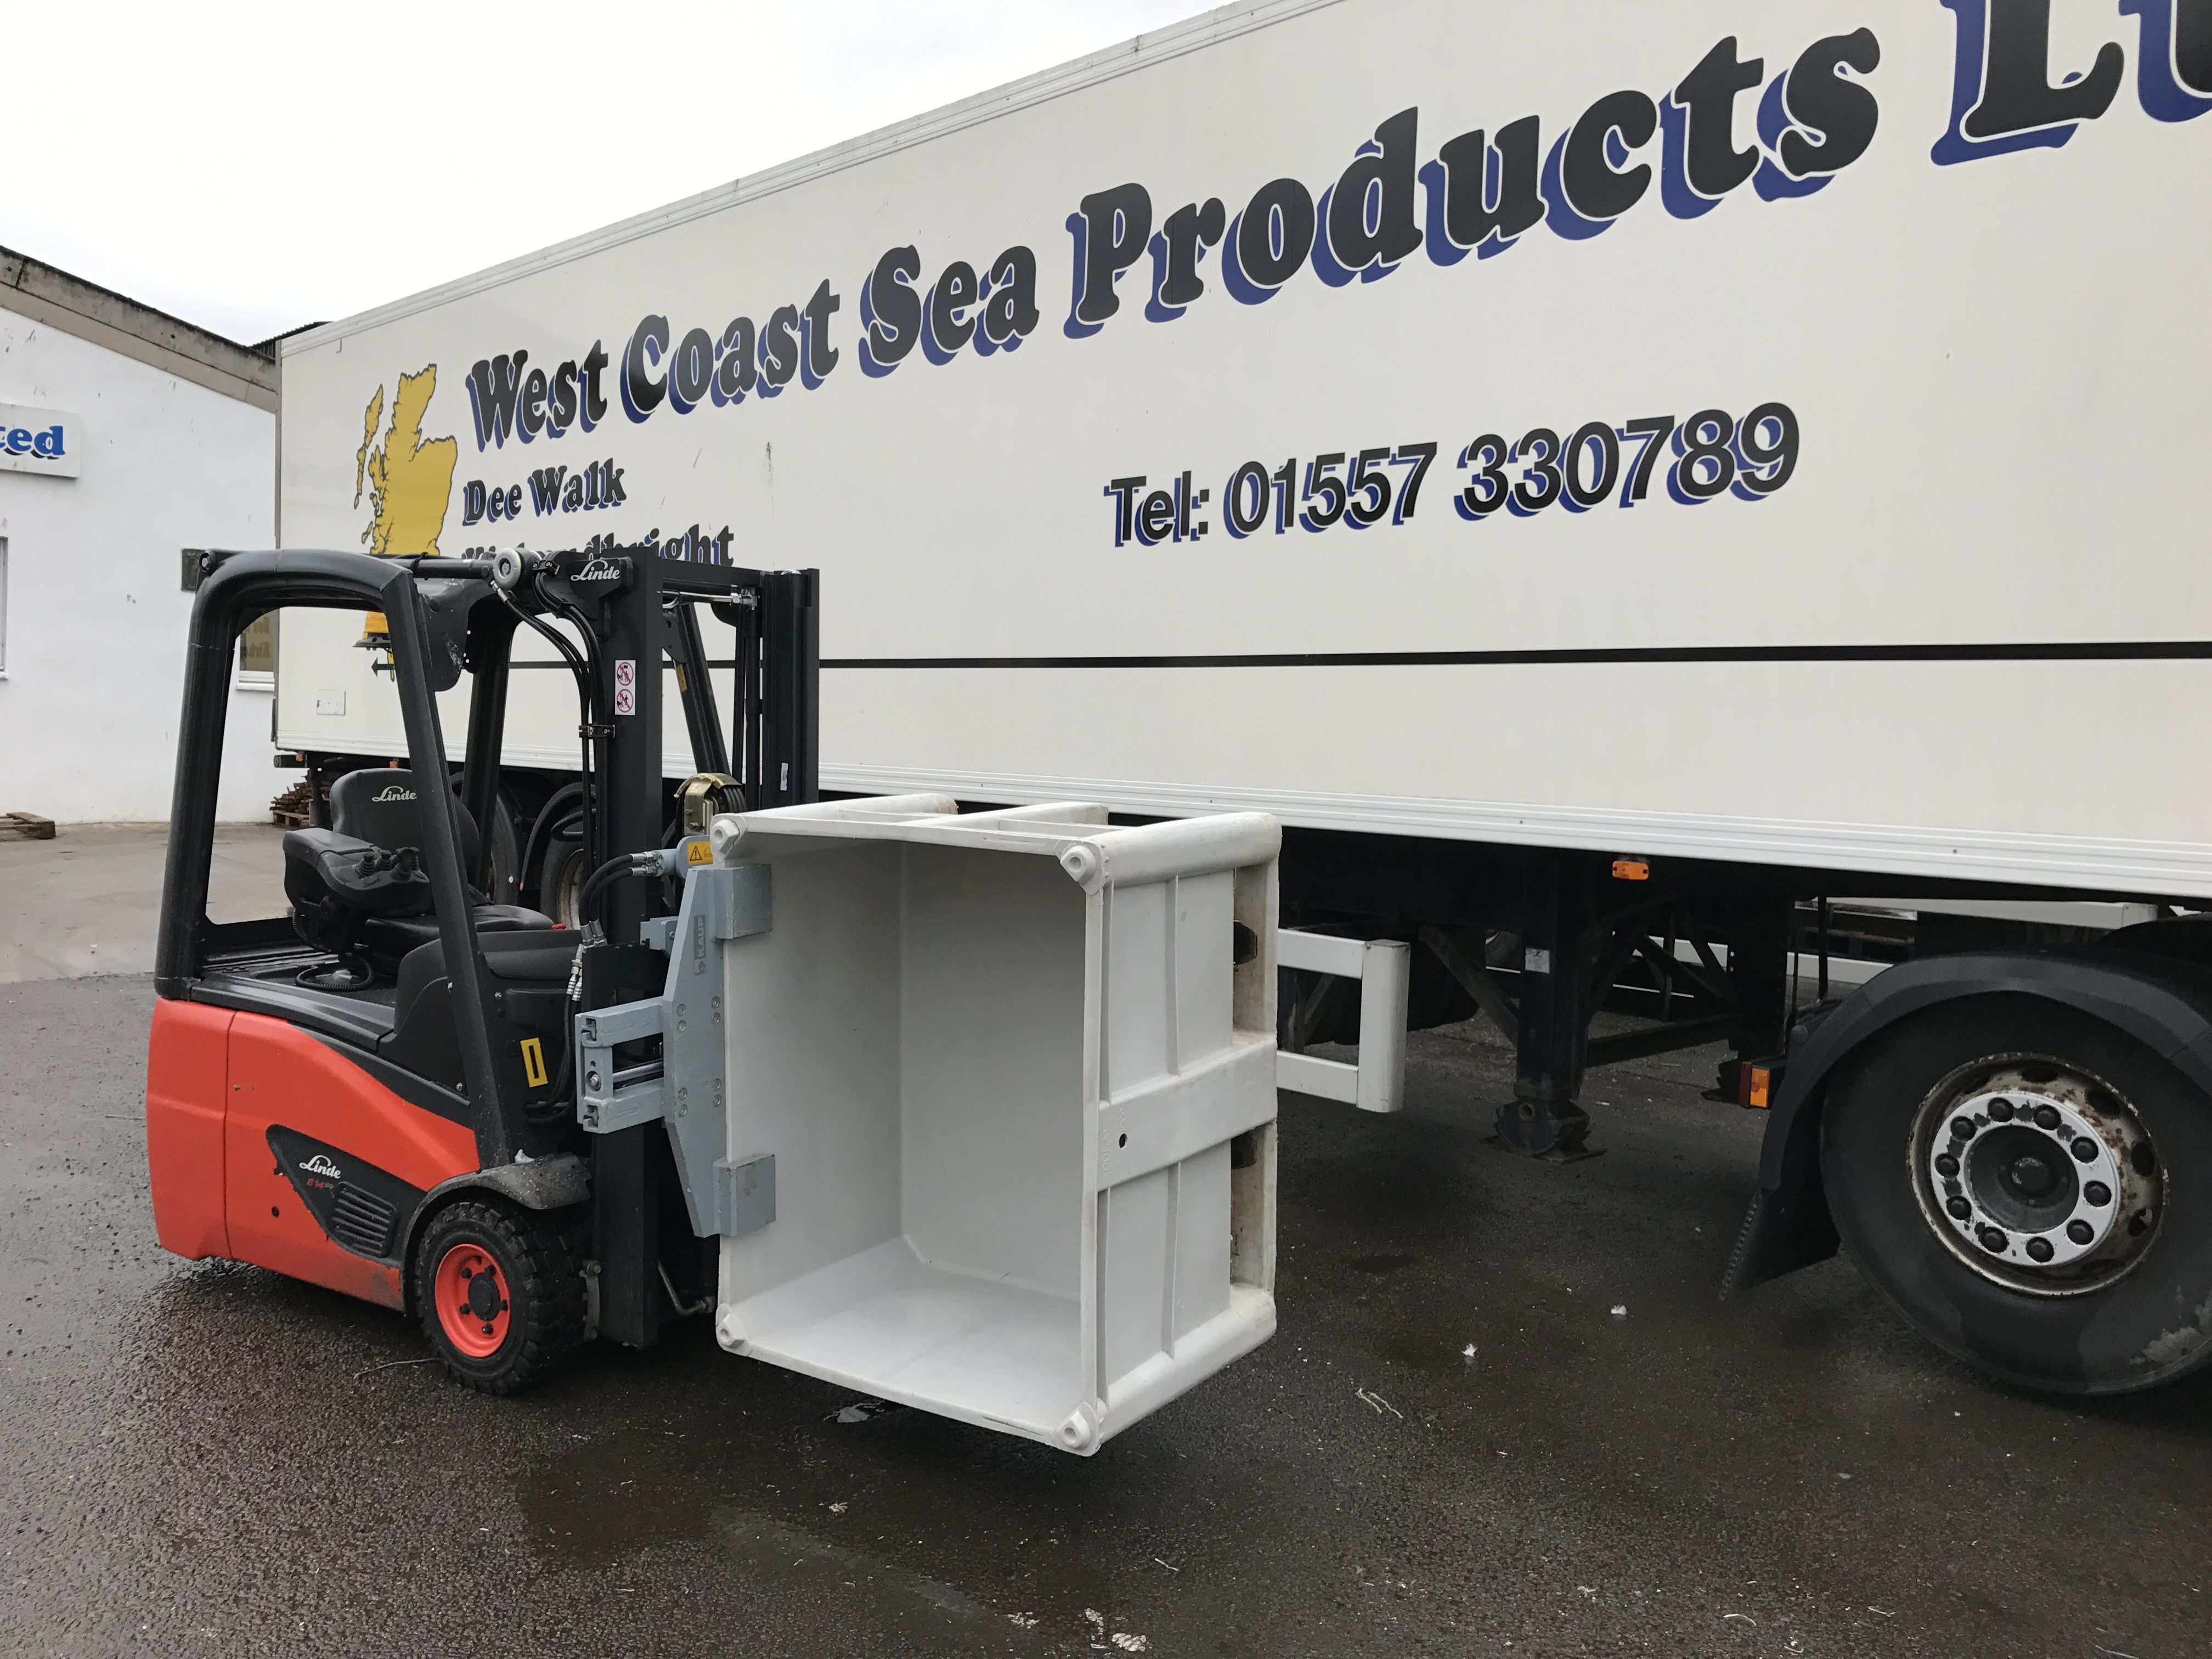 B&B Attachments find a Solution for West Coast Sea Products Bespoke Material Handling